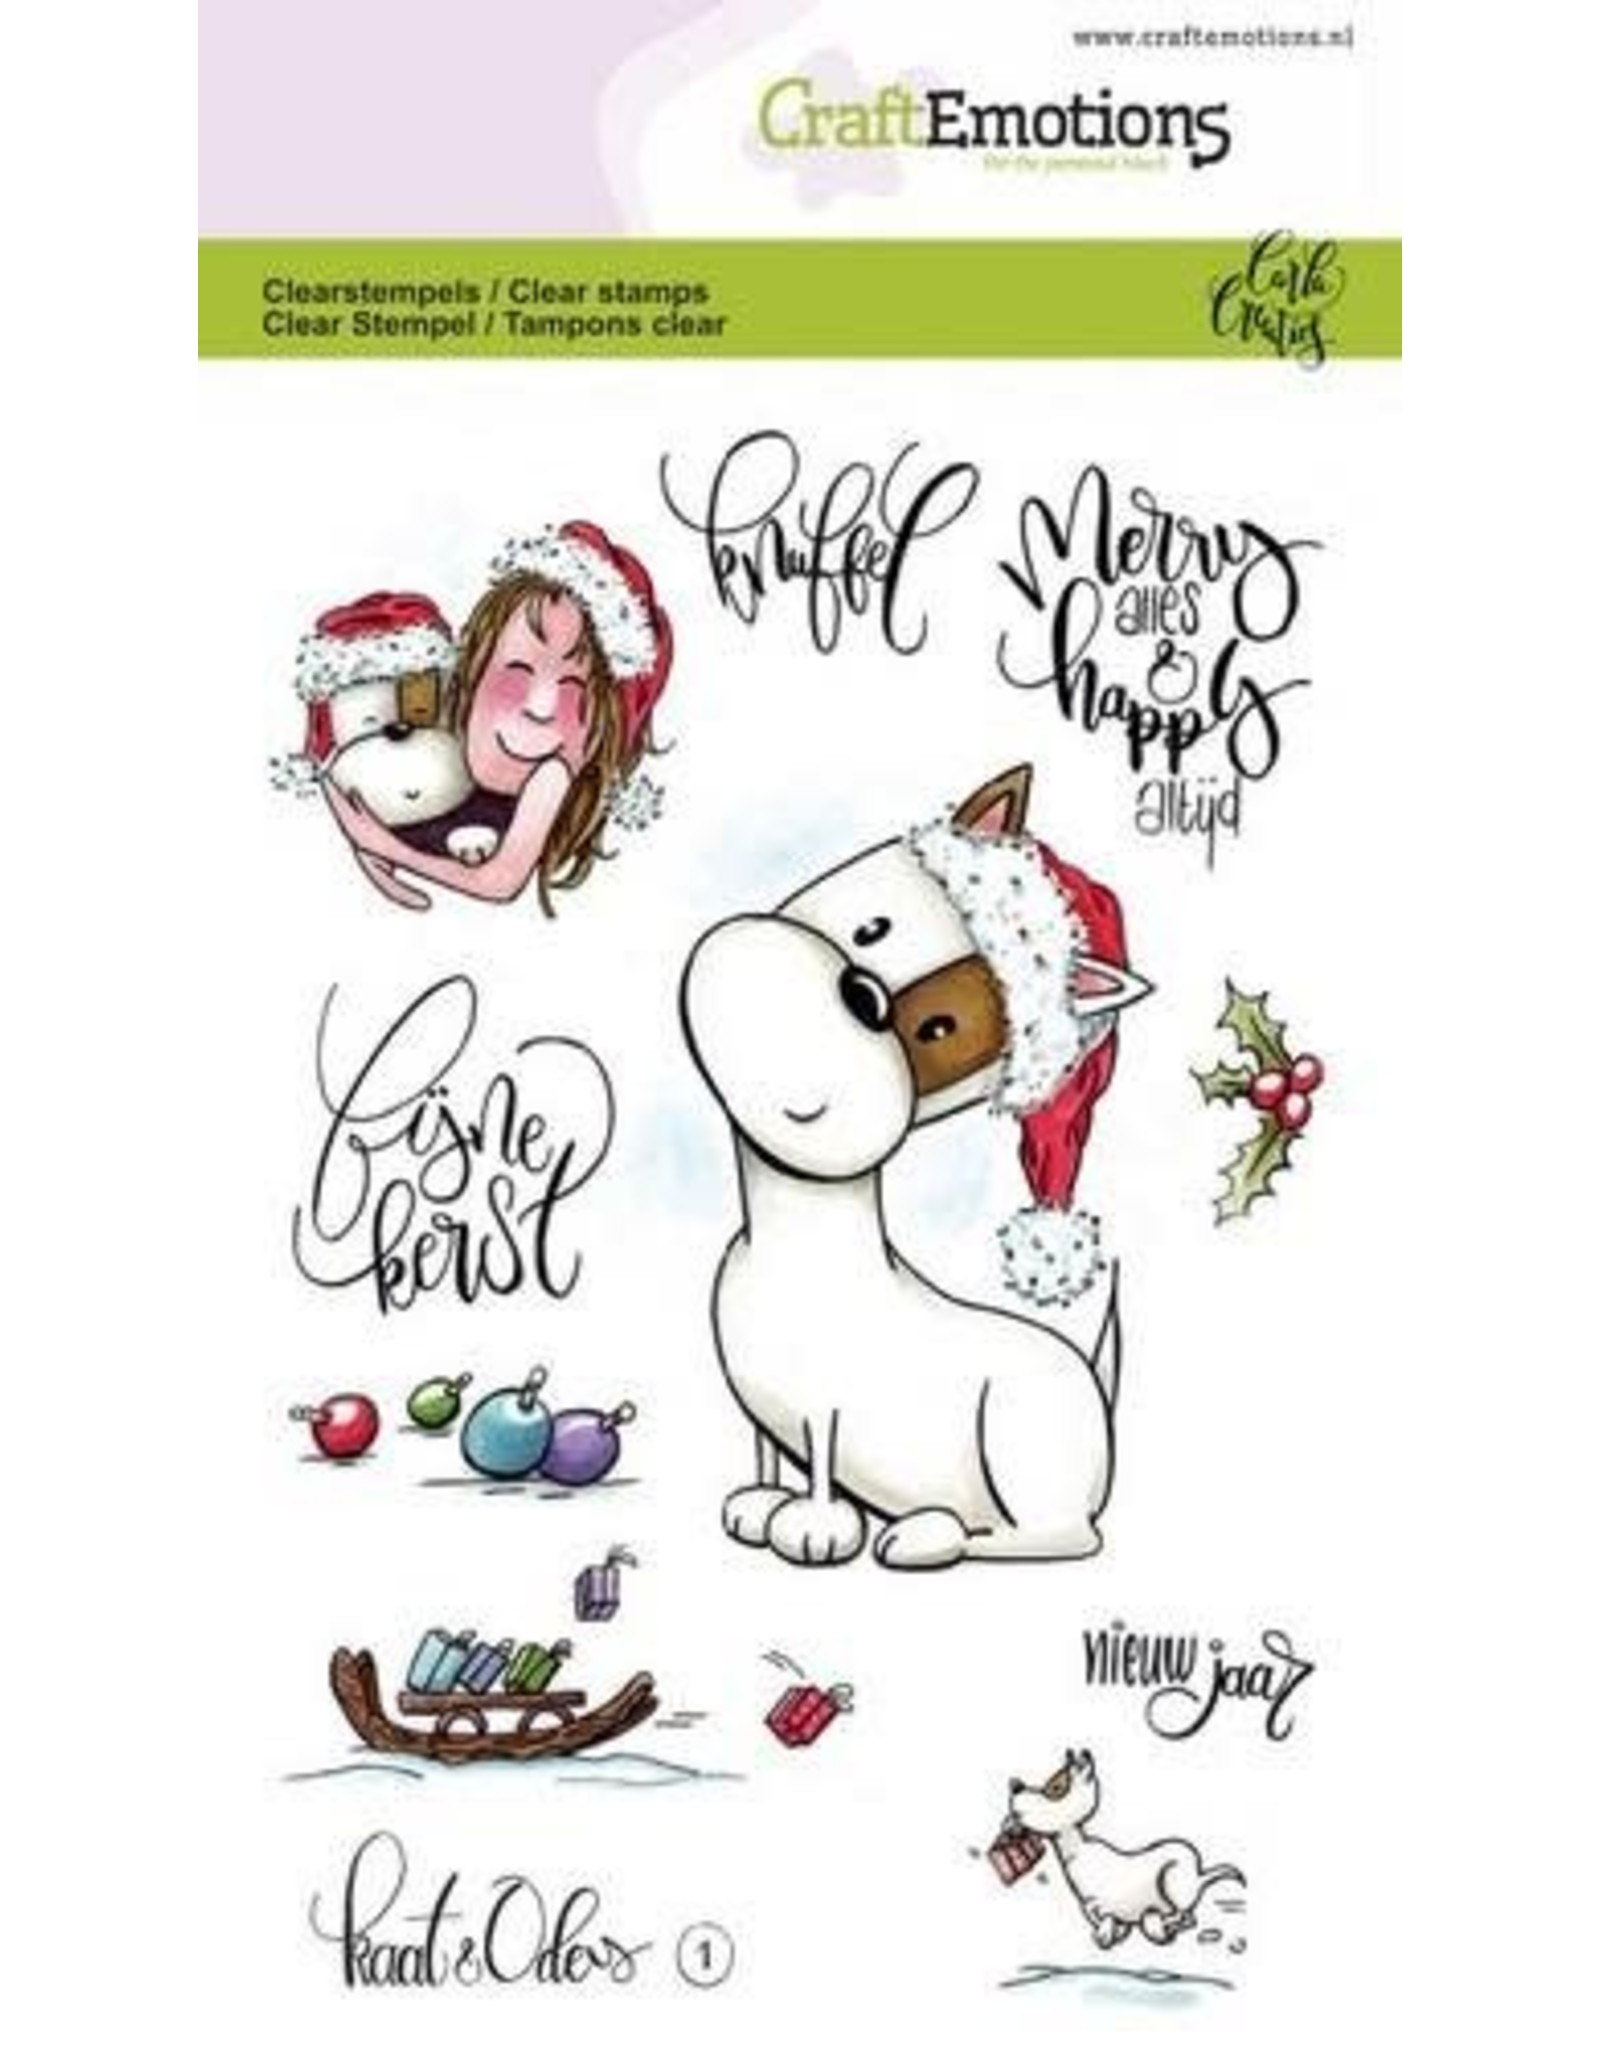 Craft Emotions CraftEmotions clearstamps A6 - Kaat en Odey 1 (NL)